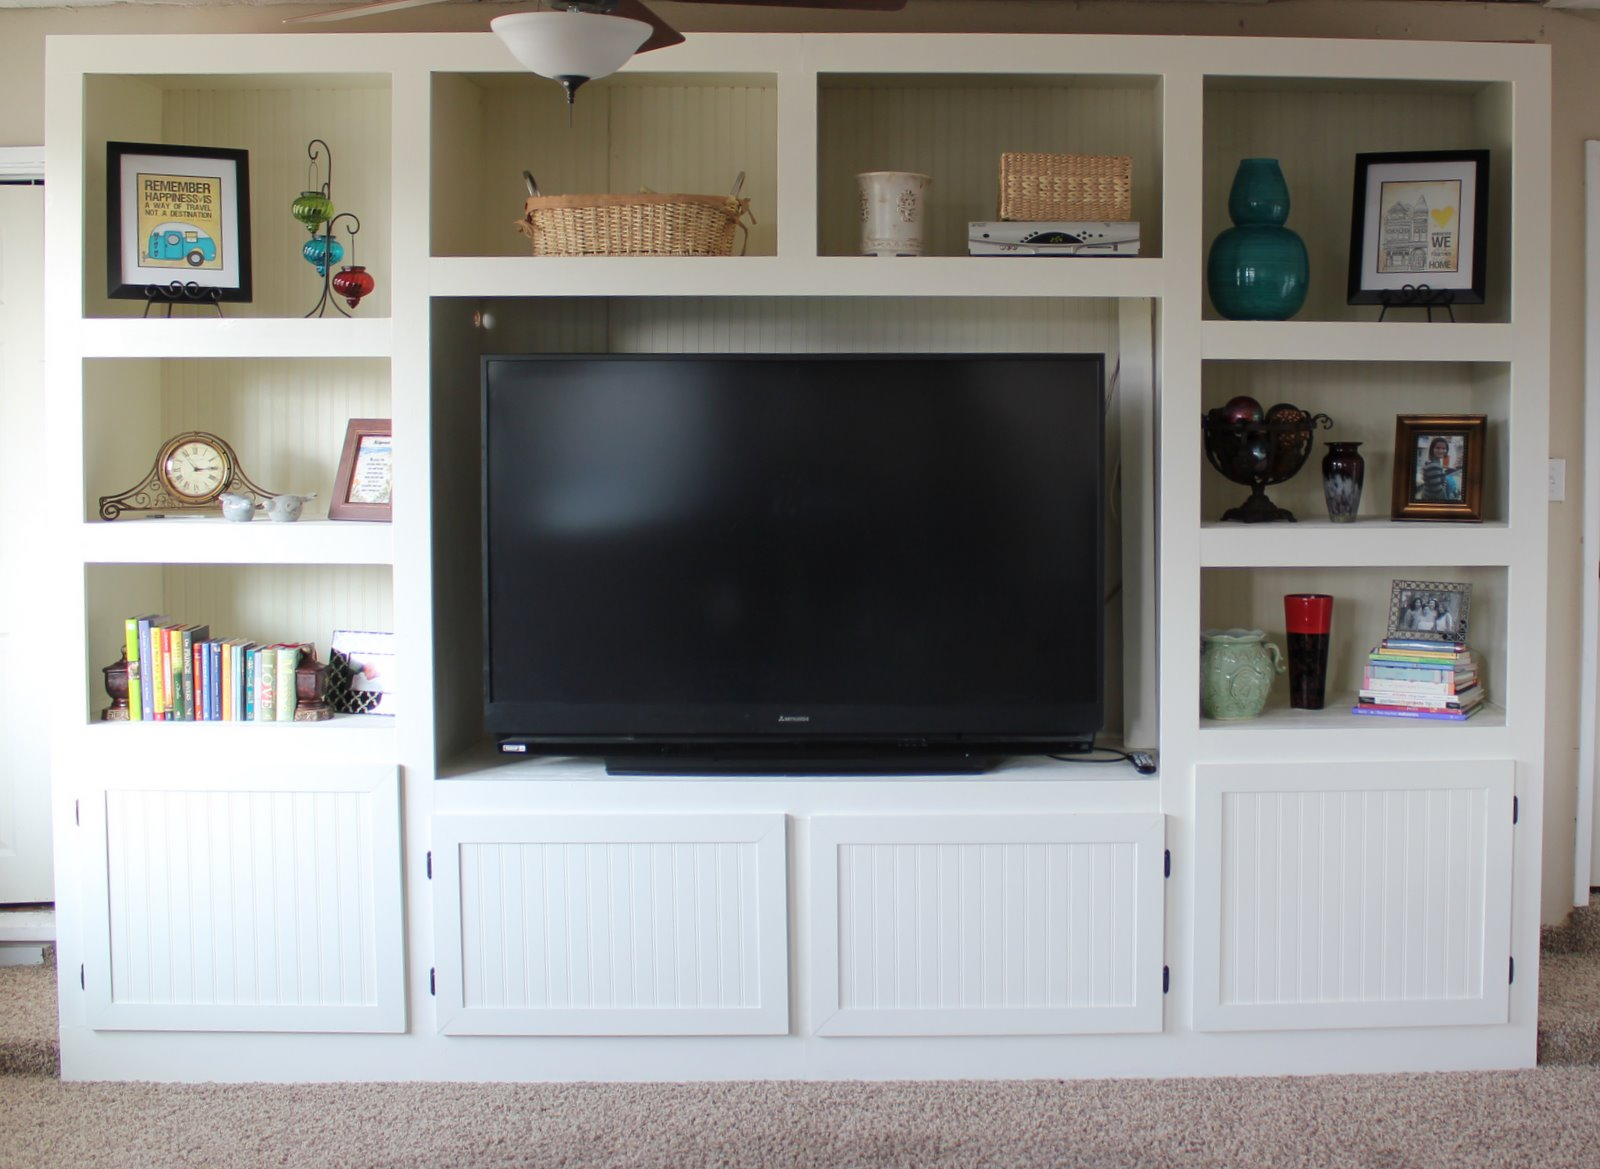 Remodelaholic Living Room Renovation With Diy Entertainment Center For Flat Screen Tv